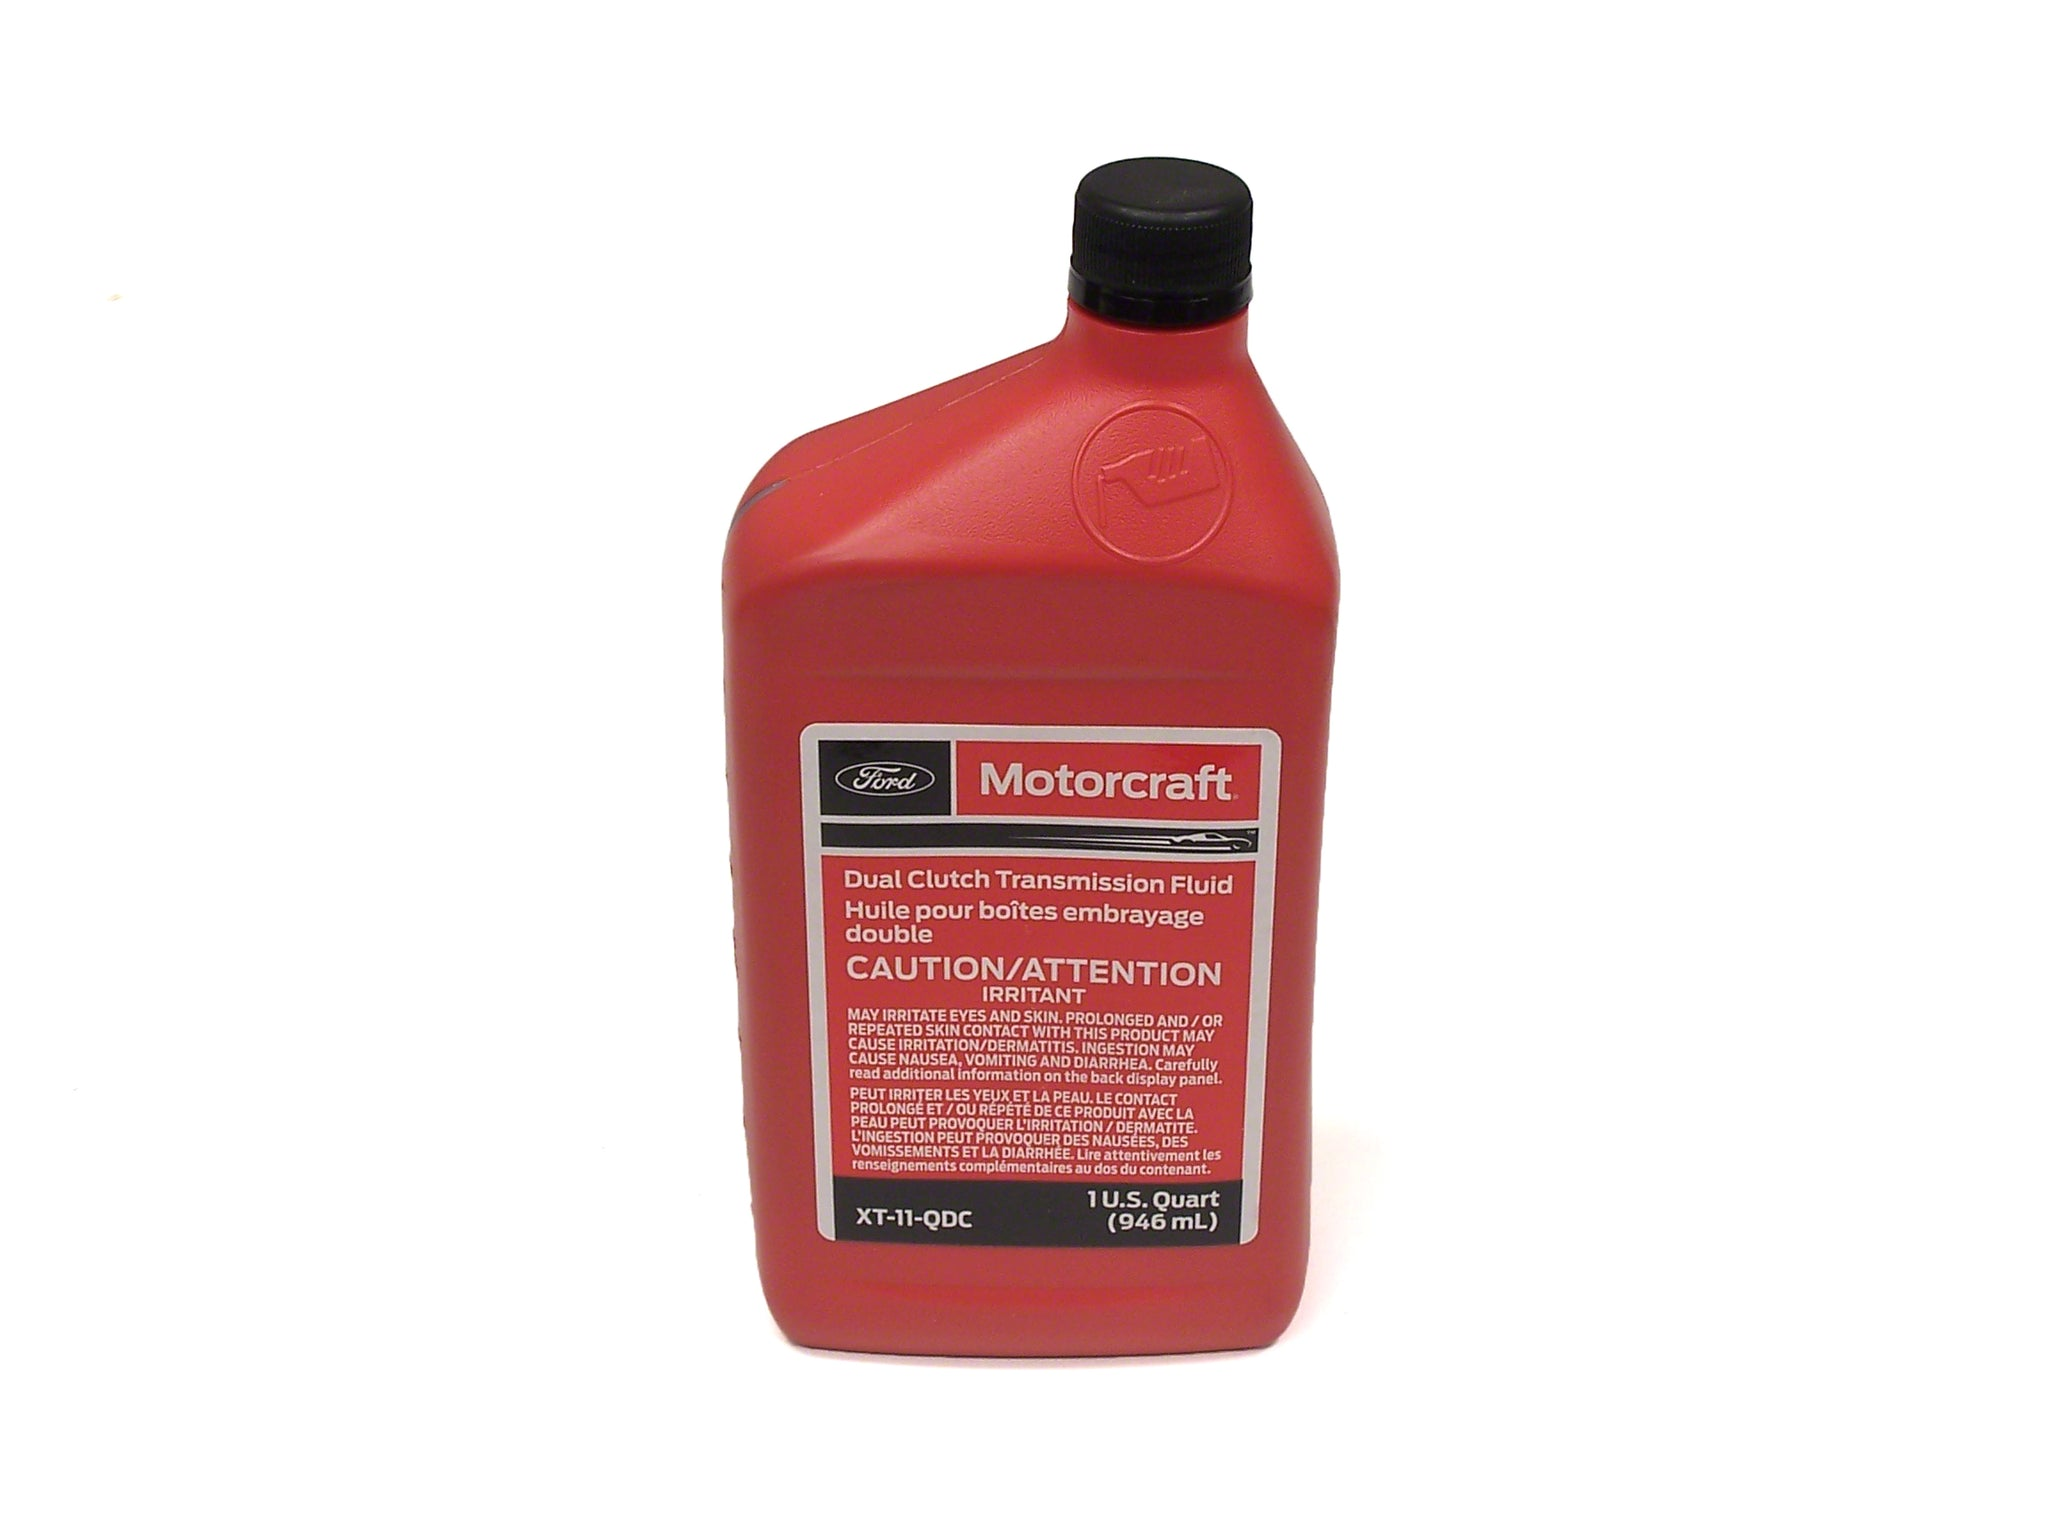 Motorcraft Dual Clutch Transmission Fluid Xt 11 Qdc 1 Quart